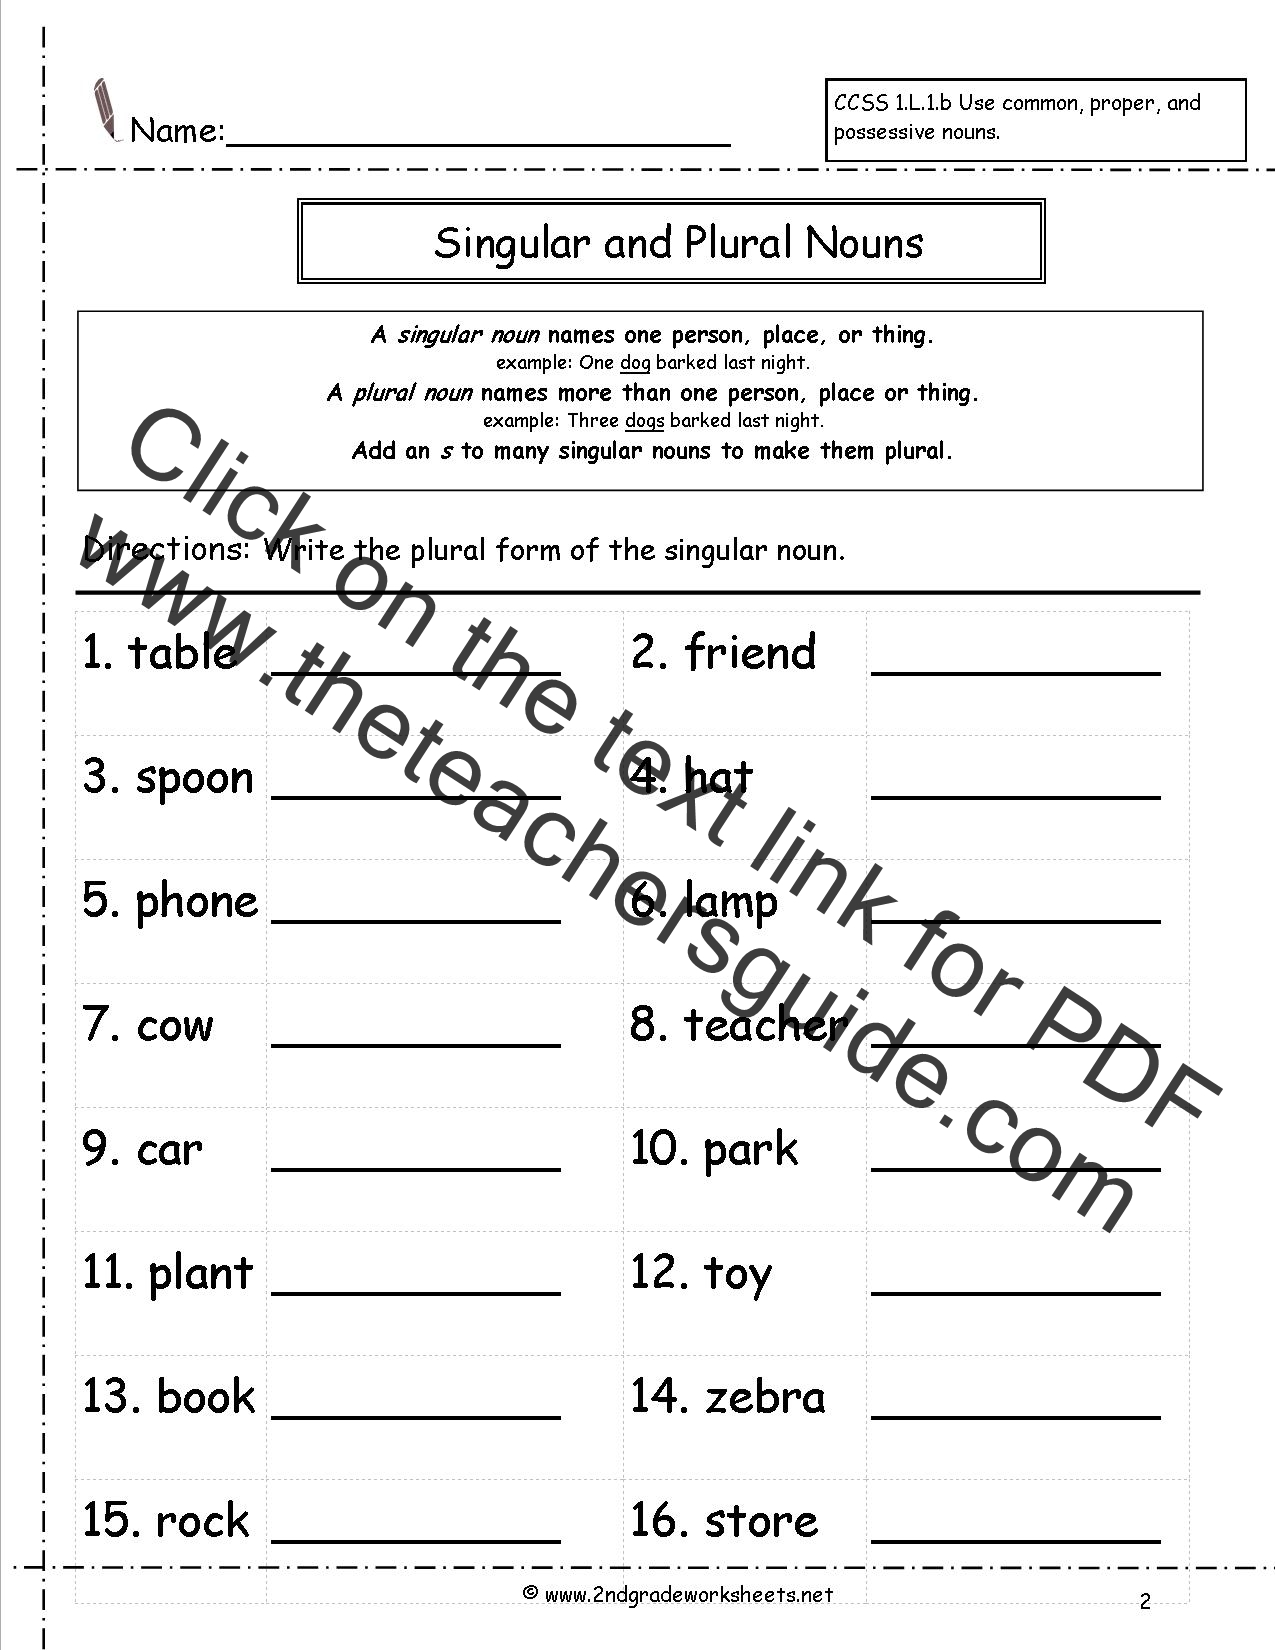 Download image Singular And Plural Nouns Worksheet 2nd Grade PC ...